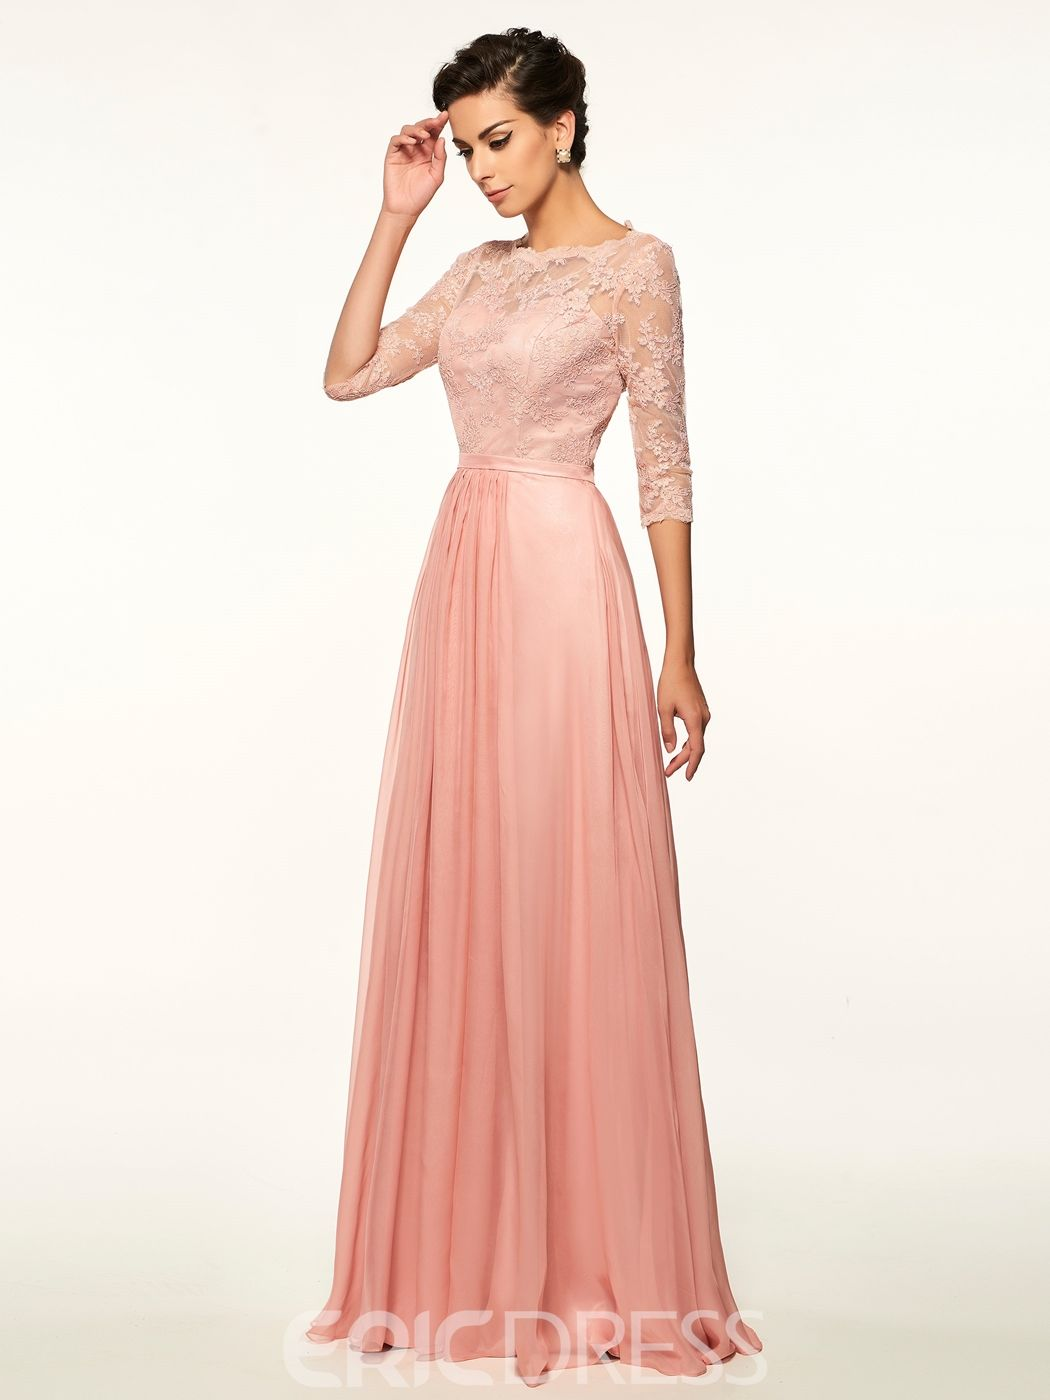 Lace half sleeves a line long scoop mother of the bride dress